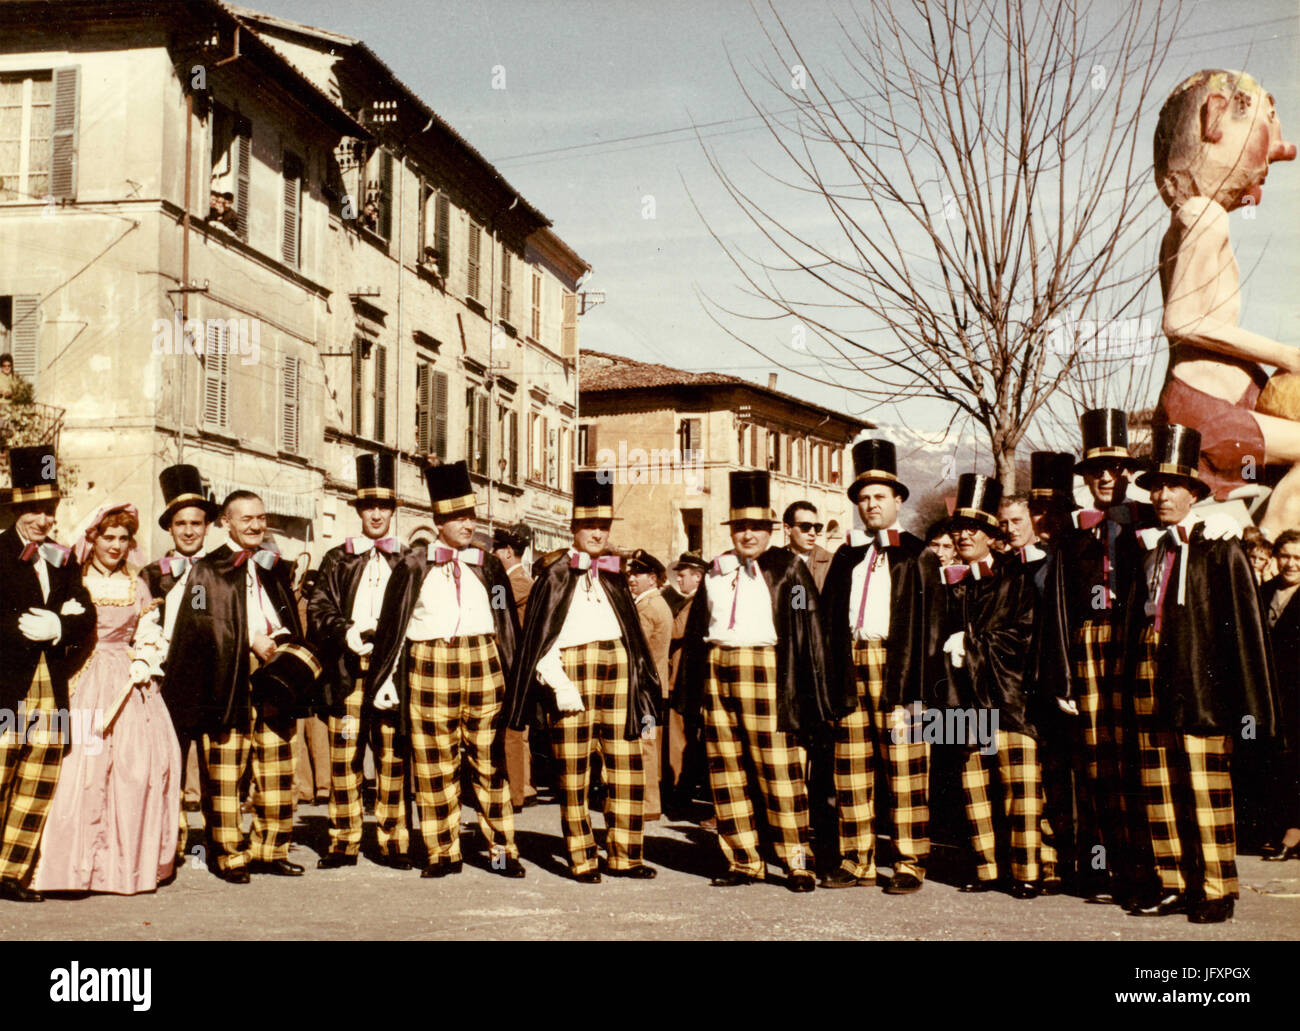 Organizing committee of Rieti Carneval 1960, Italy - Stock Image